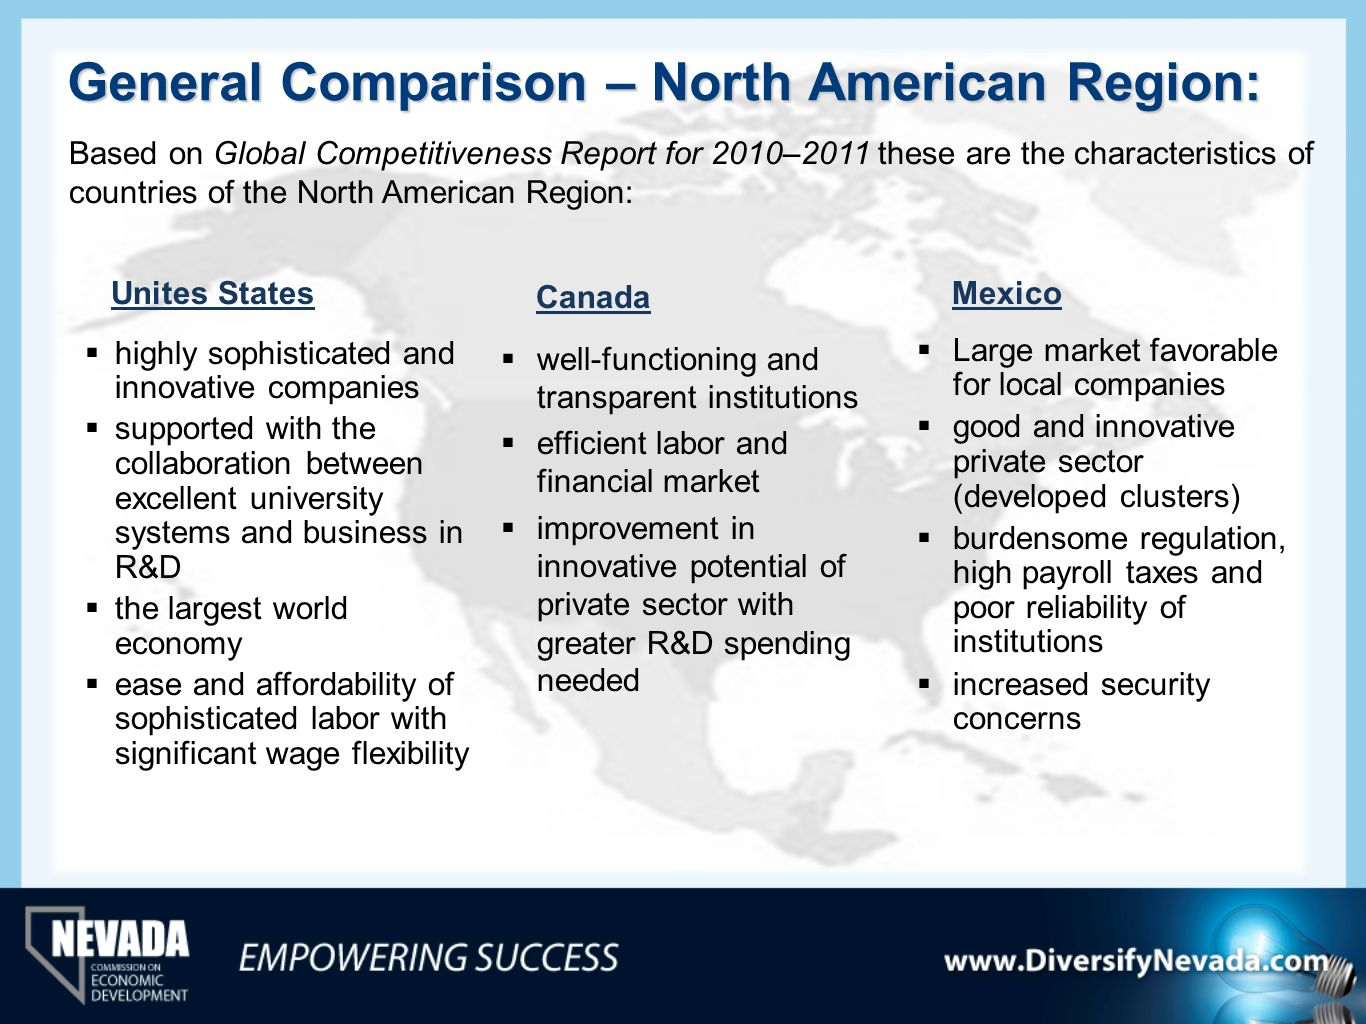 General Comparison – North American Region: